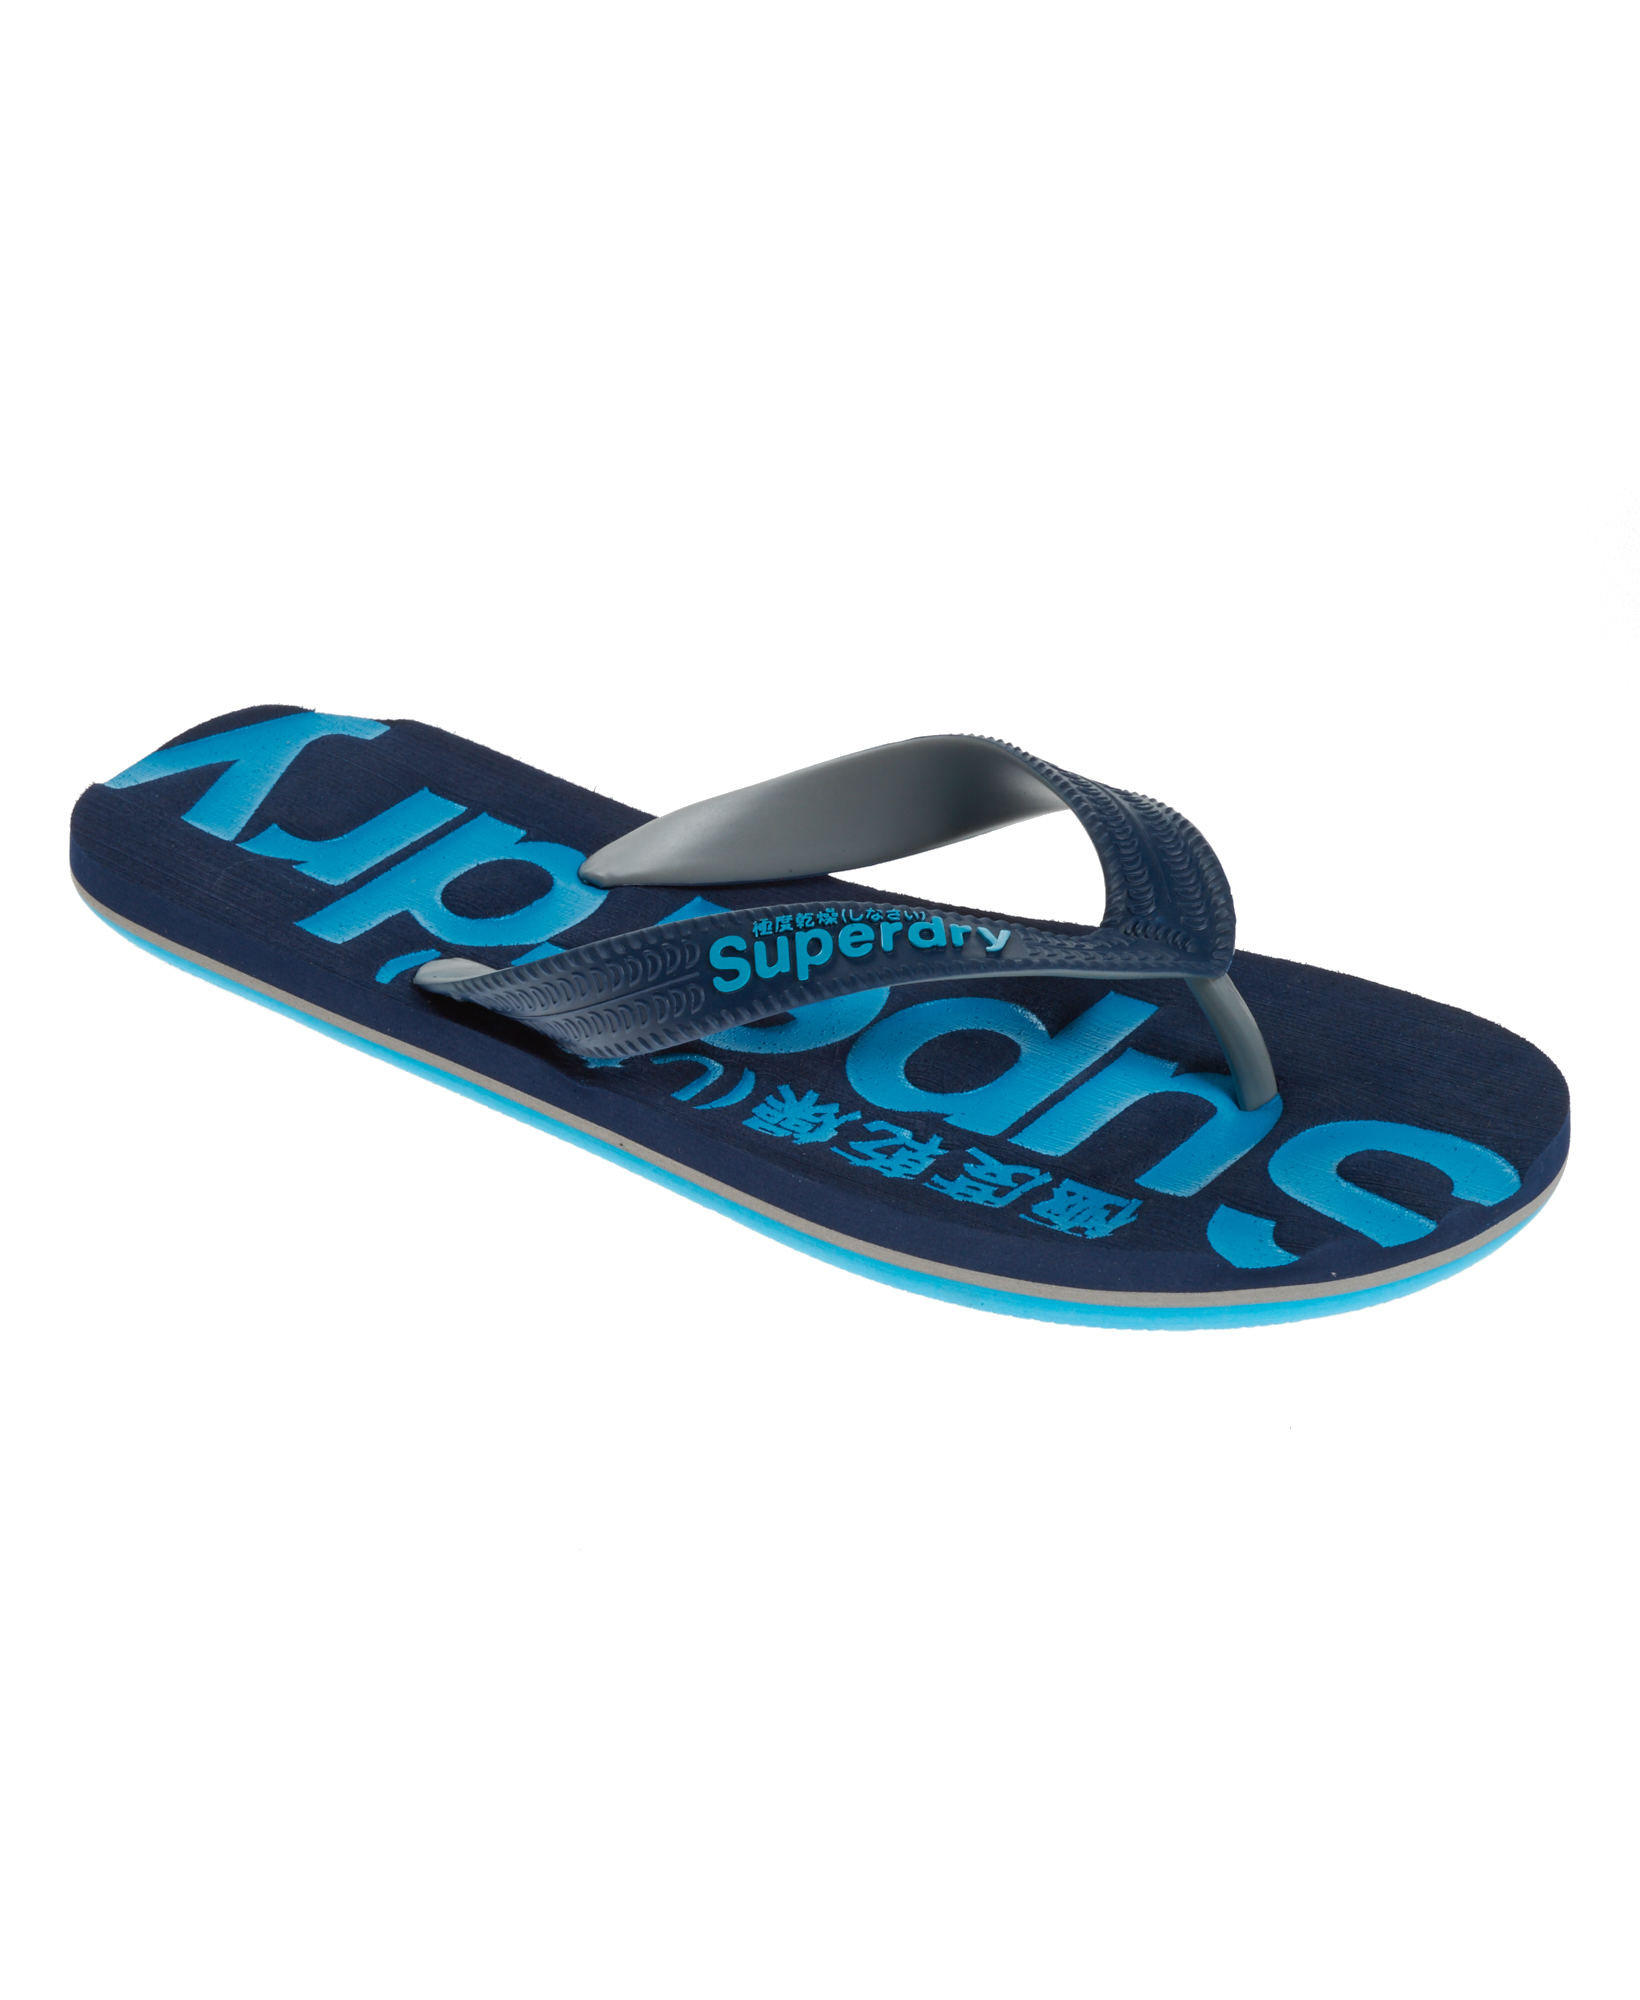 neue herren superdry flip flops navy. Black Bedroom Furniture Sets. Home Design Ideas